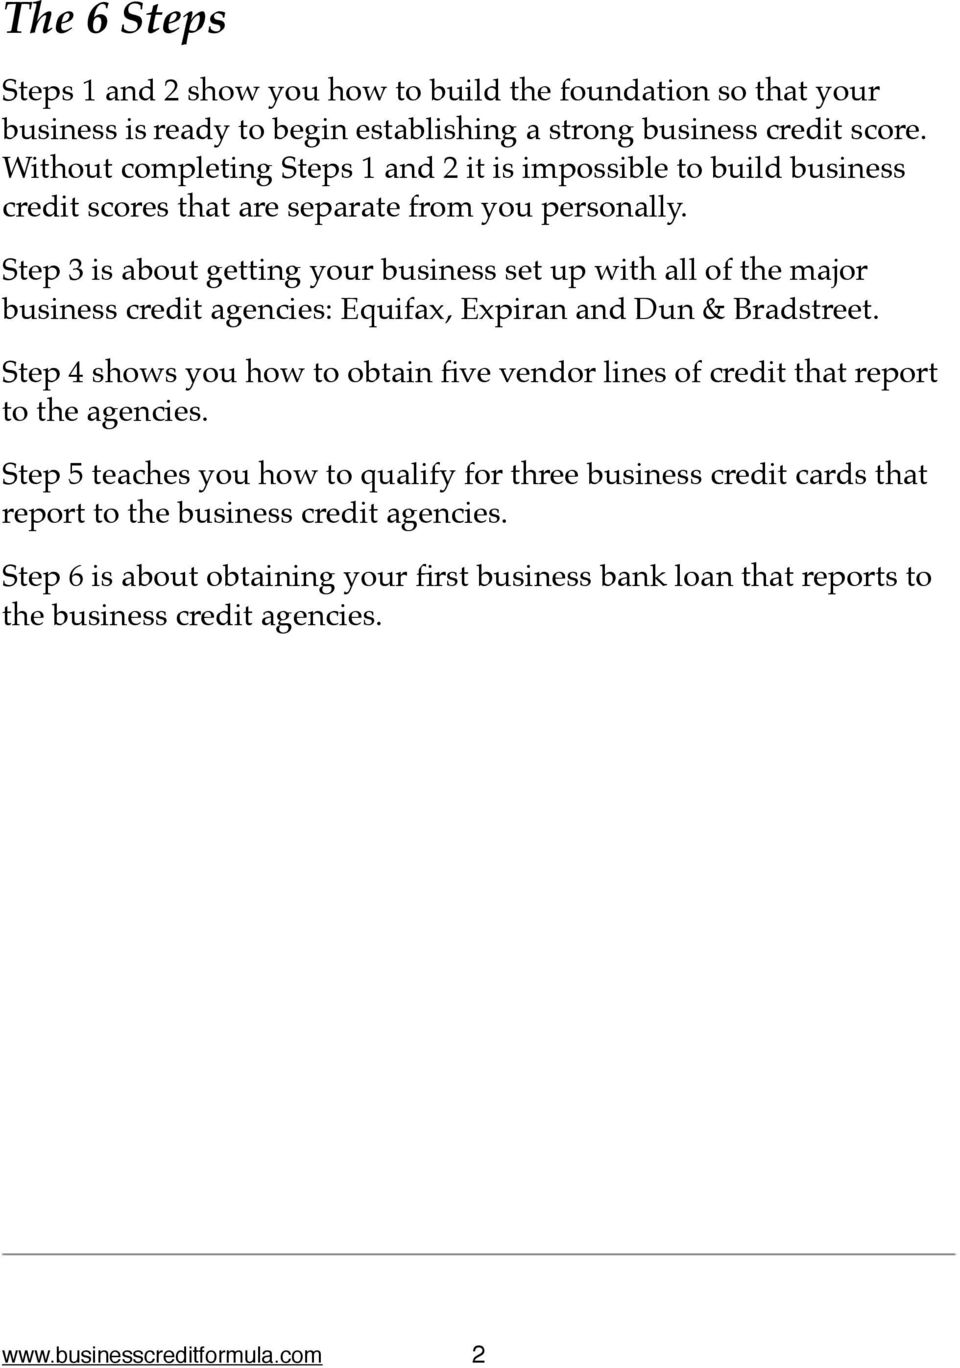 """ Step 3 is about getting your business set up with all of the major business credit agencies: Equifax, Expiran and Dun & Bradstreet."